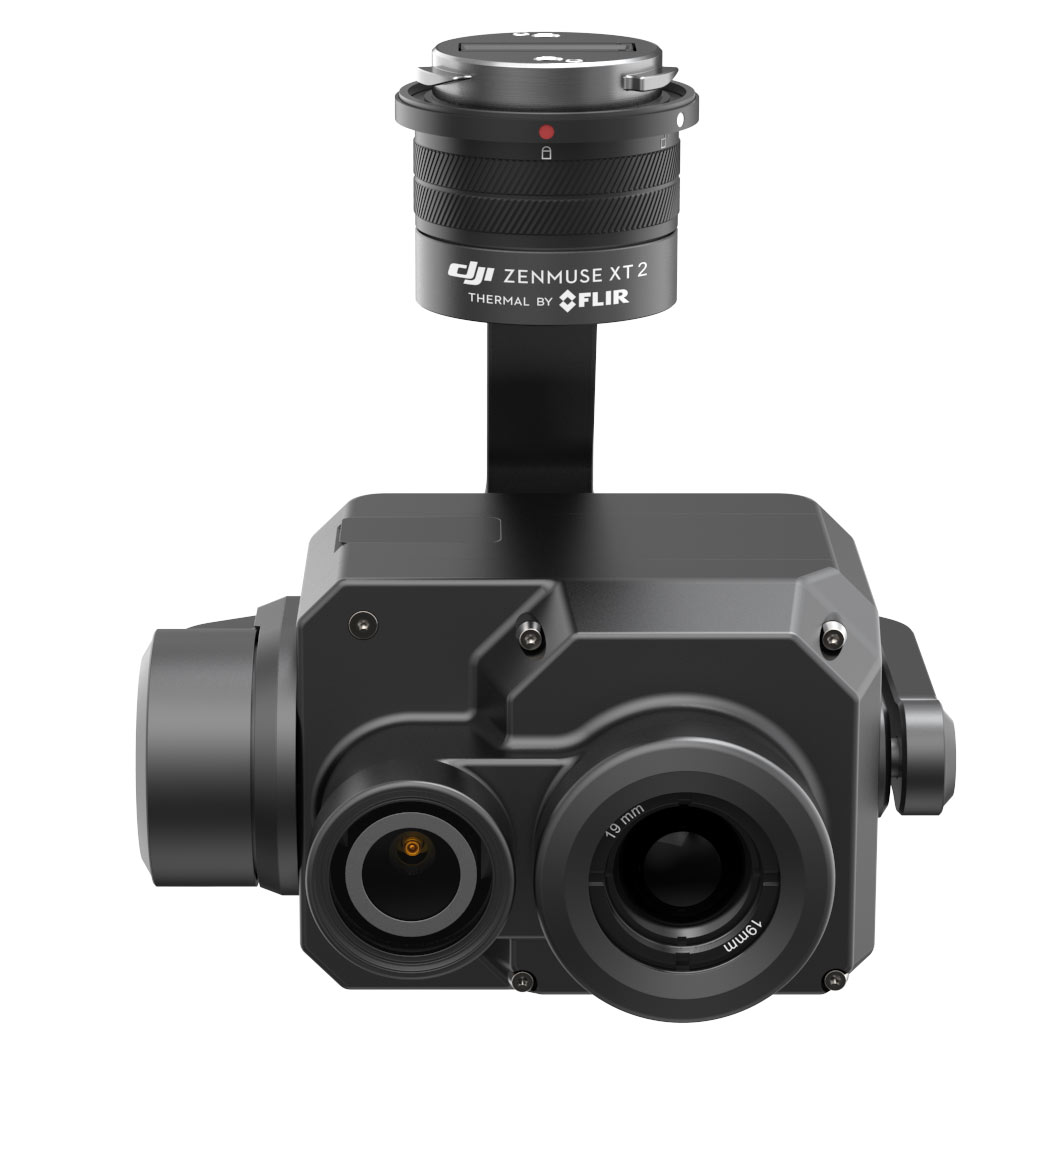 DJI Zenmuse XT2 FLIR Thermal Drone Camera